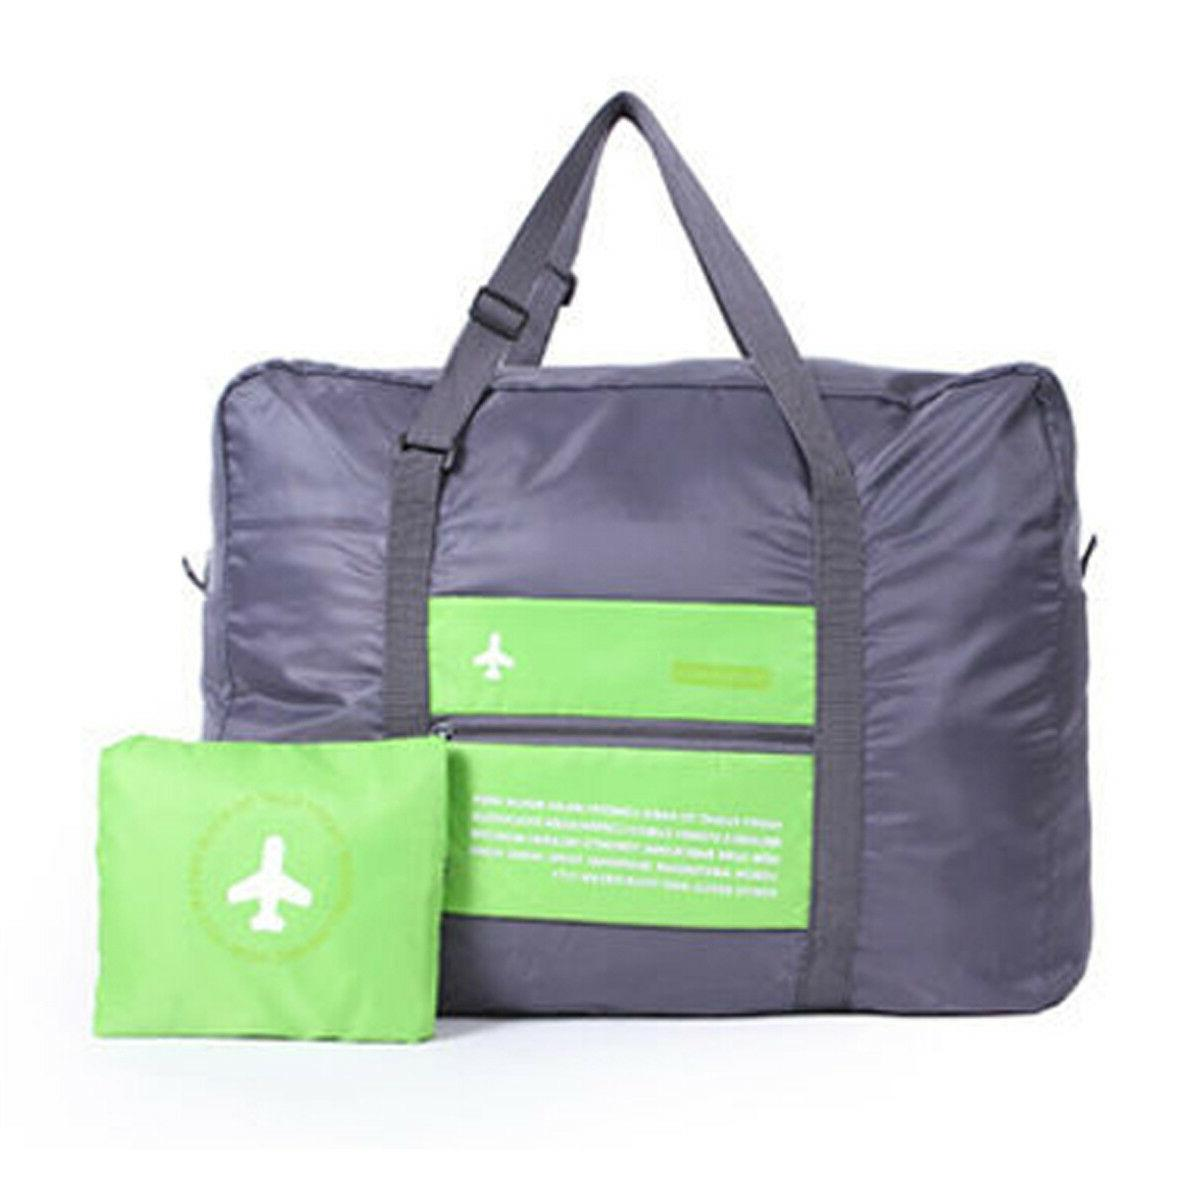 Travel Size Luggage Carry-On Green